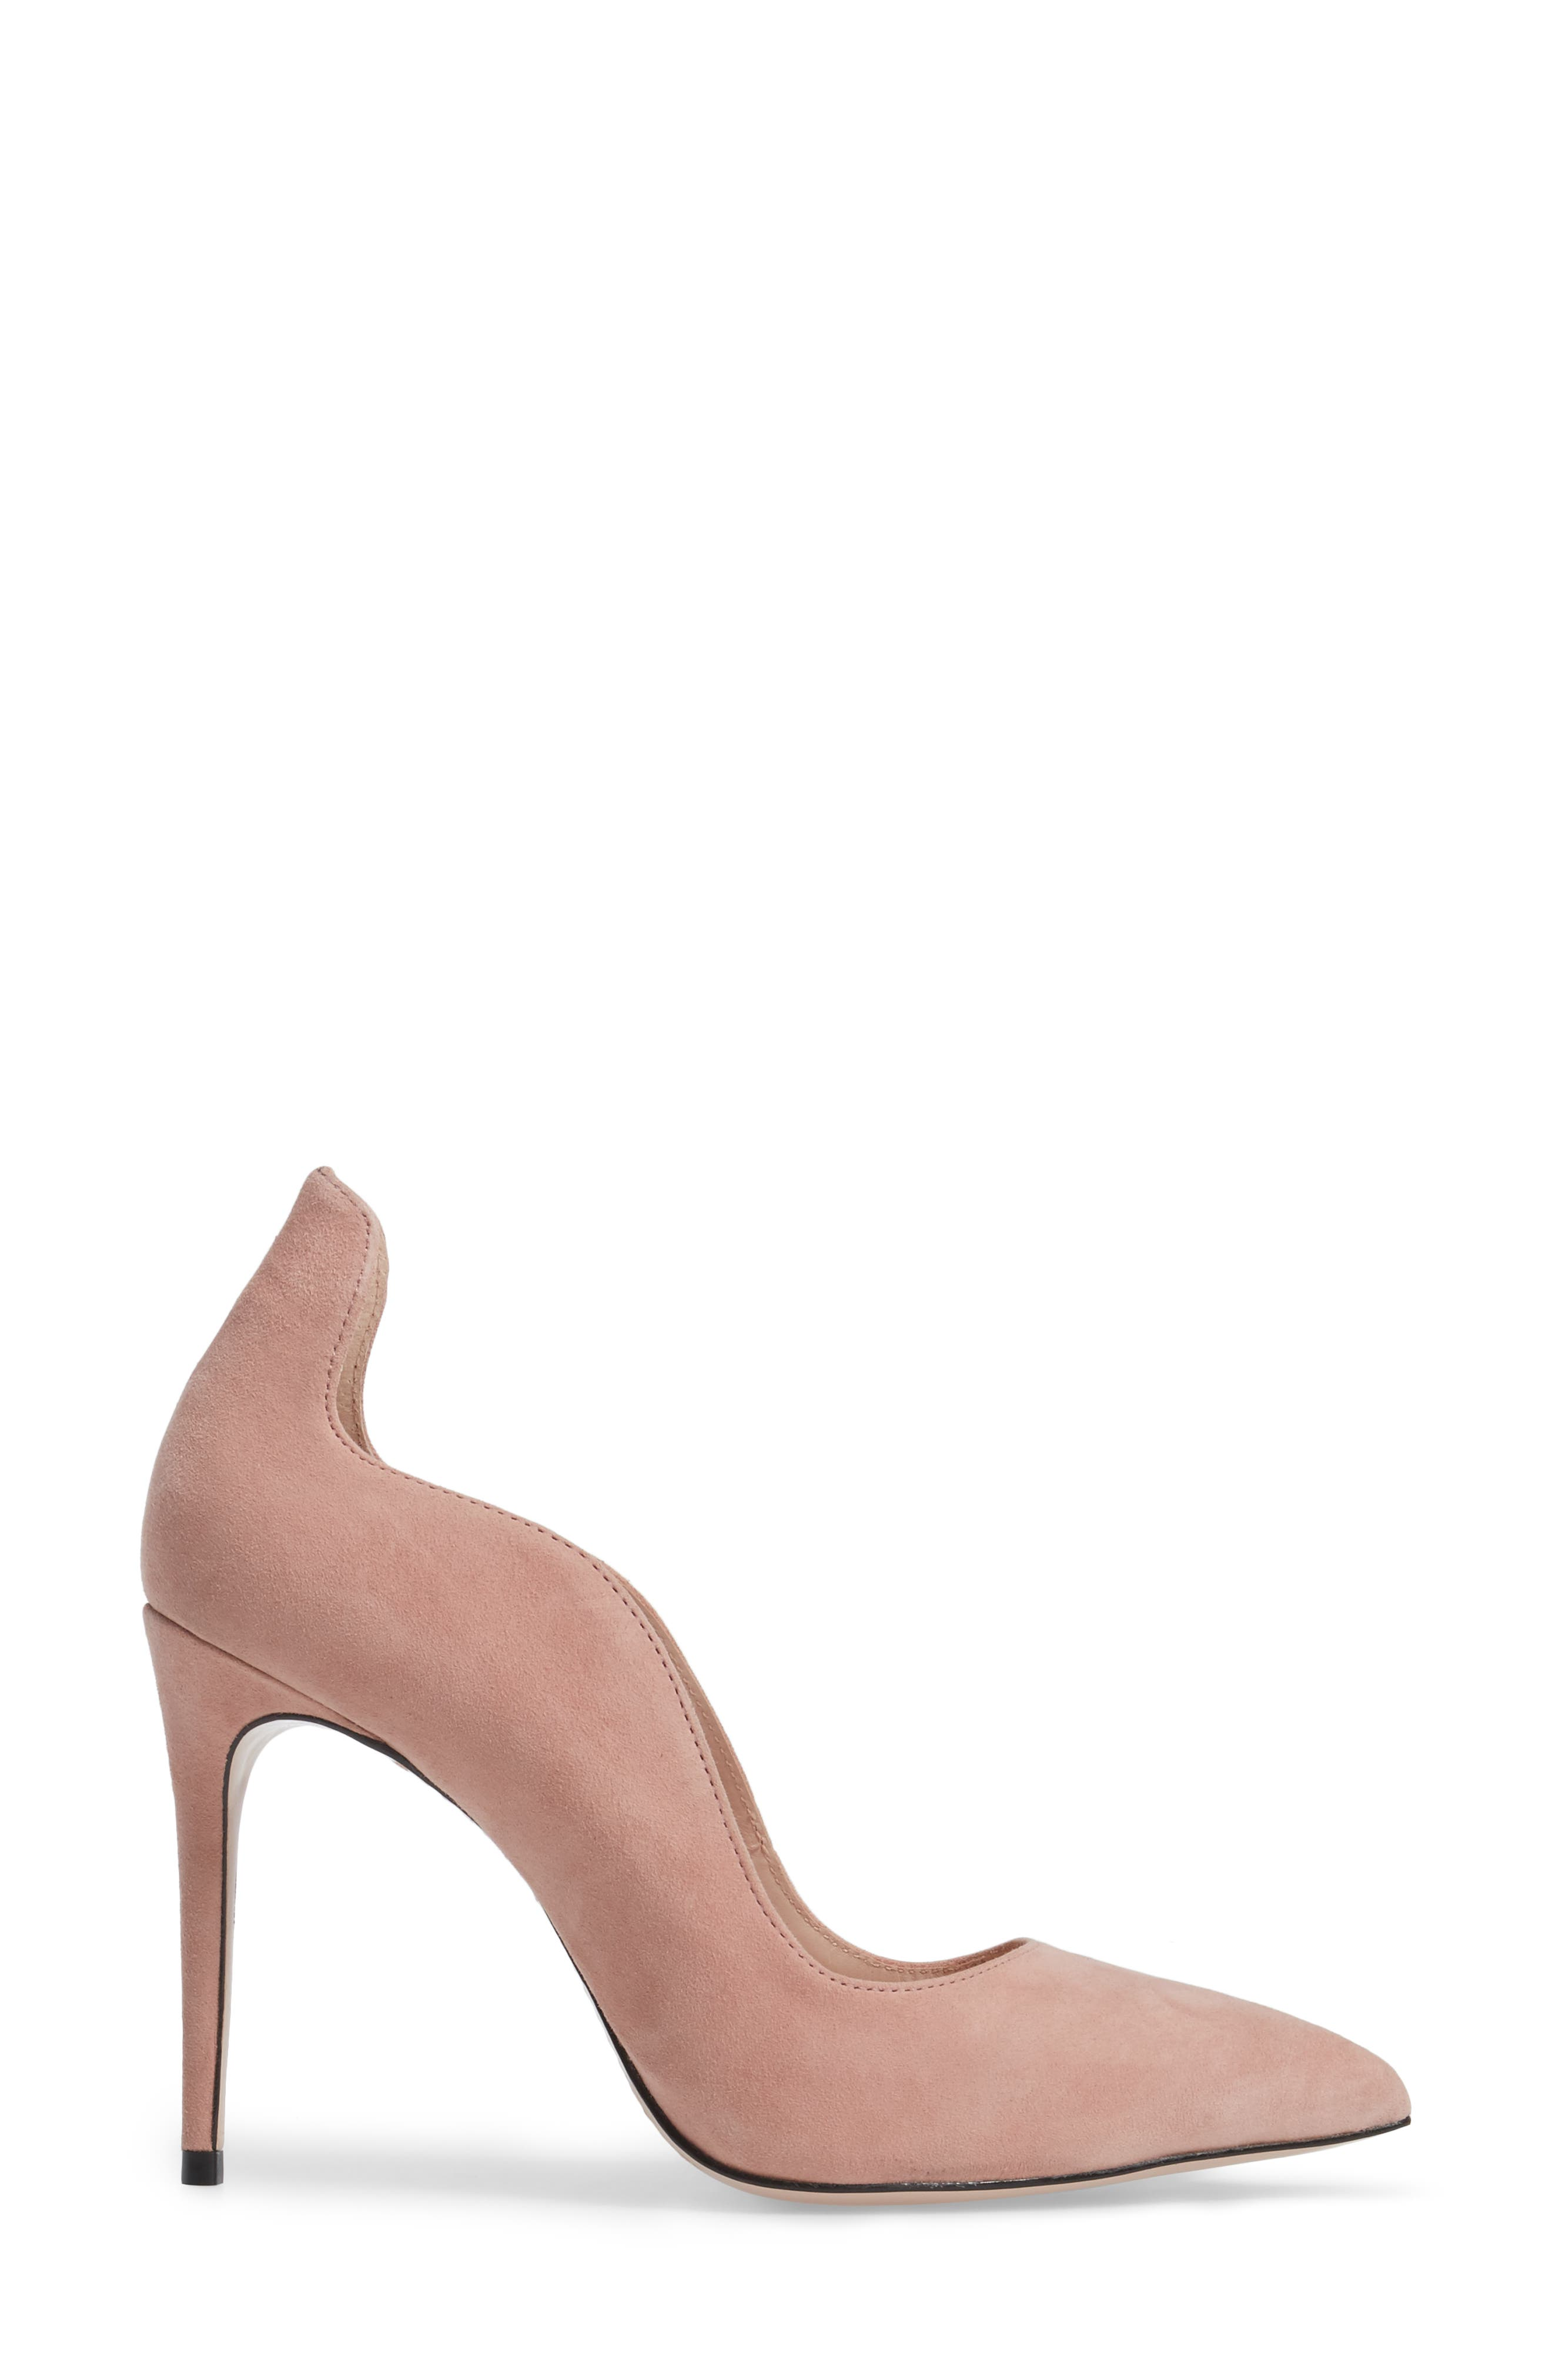 Anika Curvy Pump,                             Alternate thumbnail 3, color,                             Blush Suede